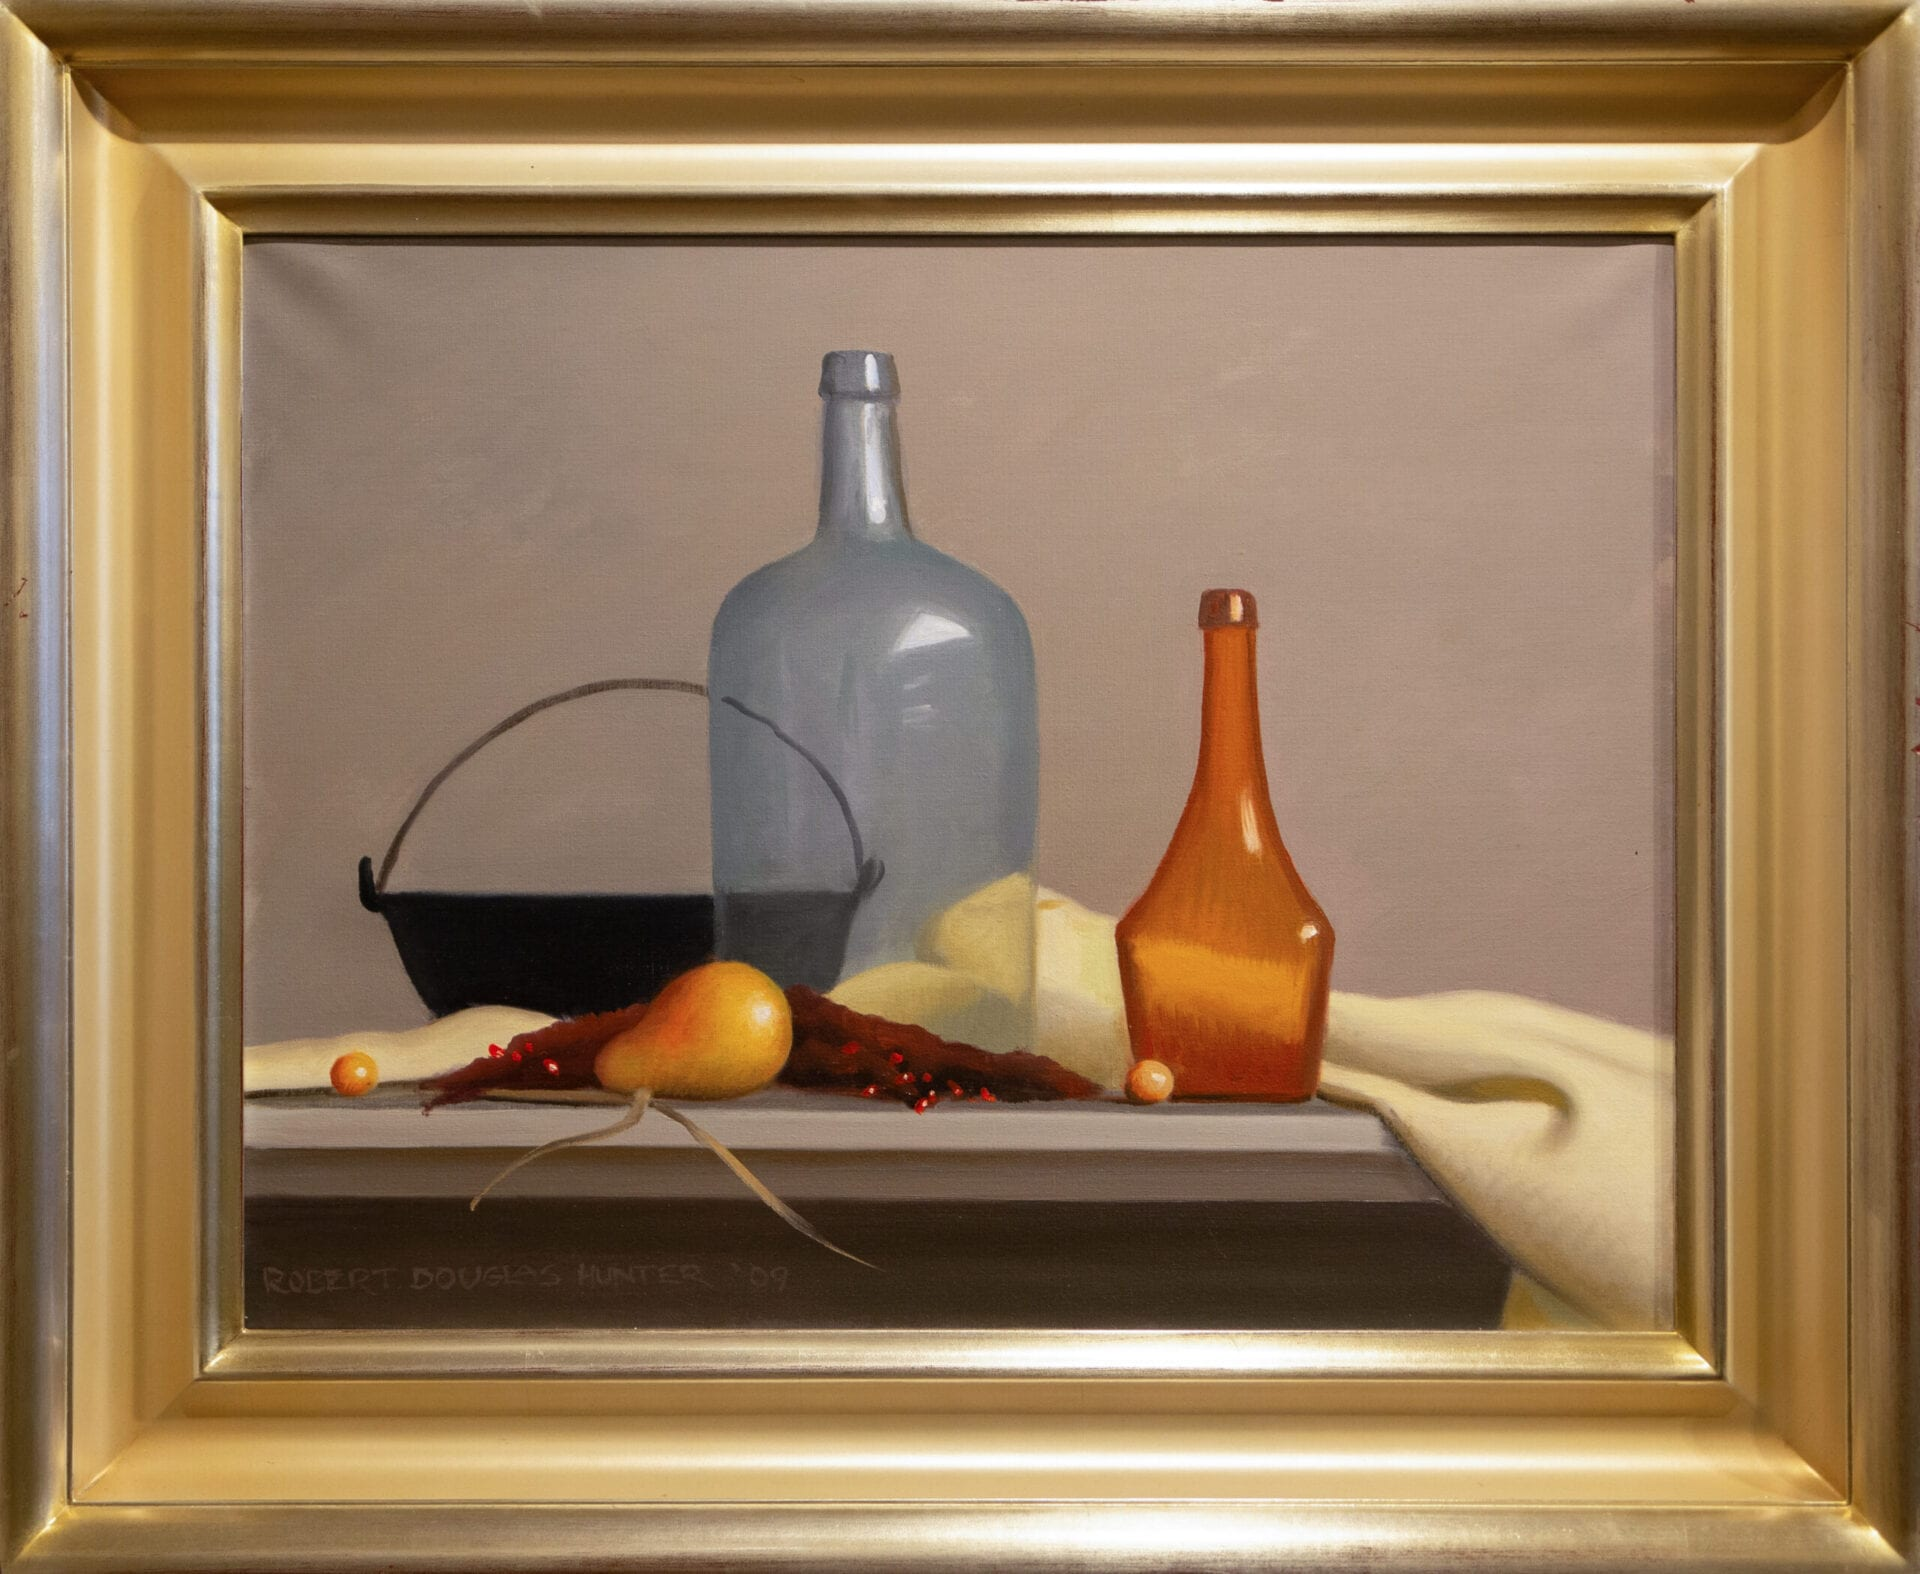 Arrangement with Two Bottles and an Iron Kettle | Robert Douglas Hunter | Oil | 20 x 26""